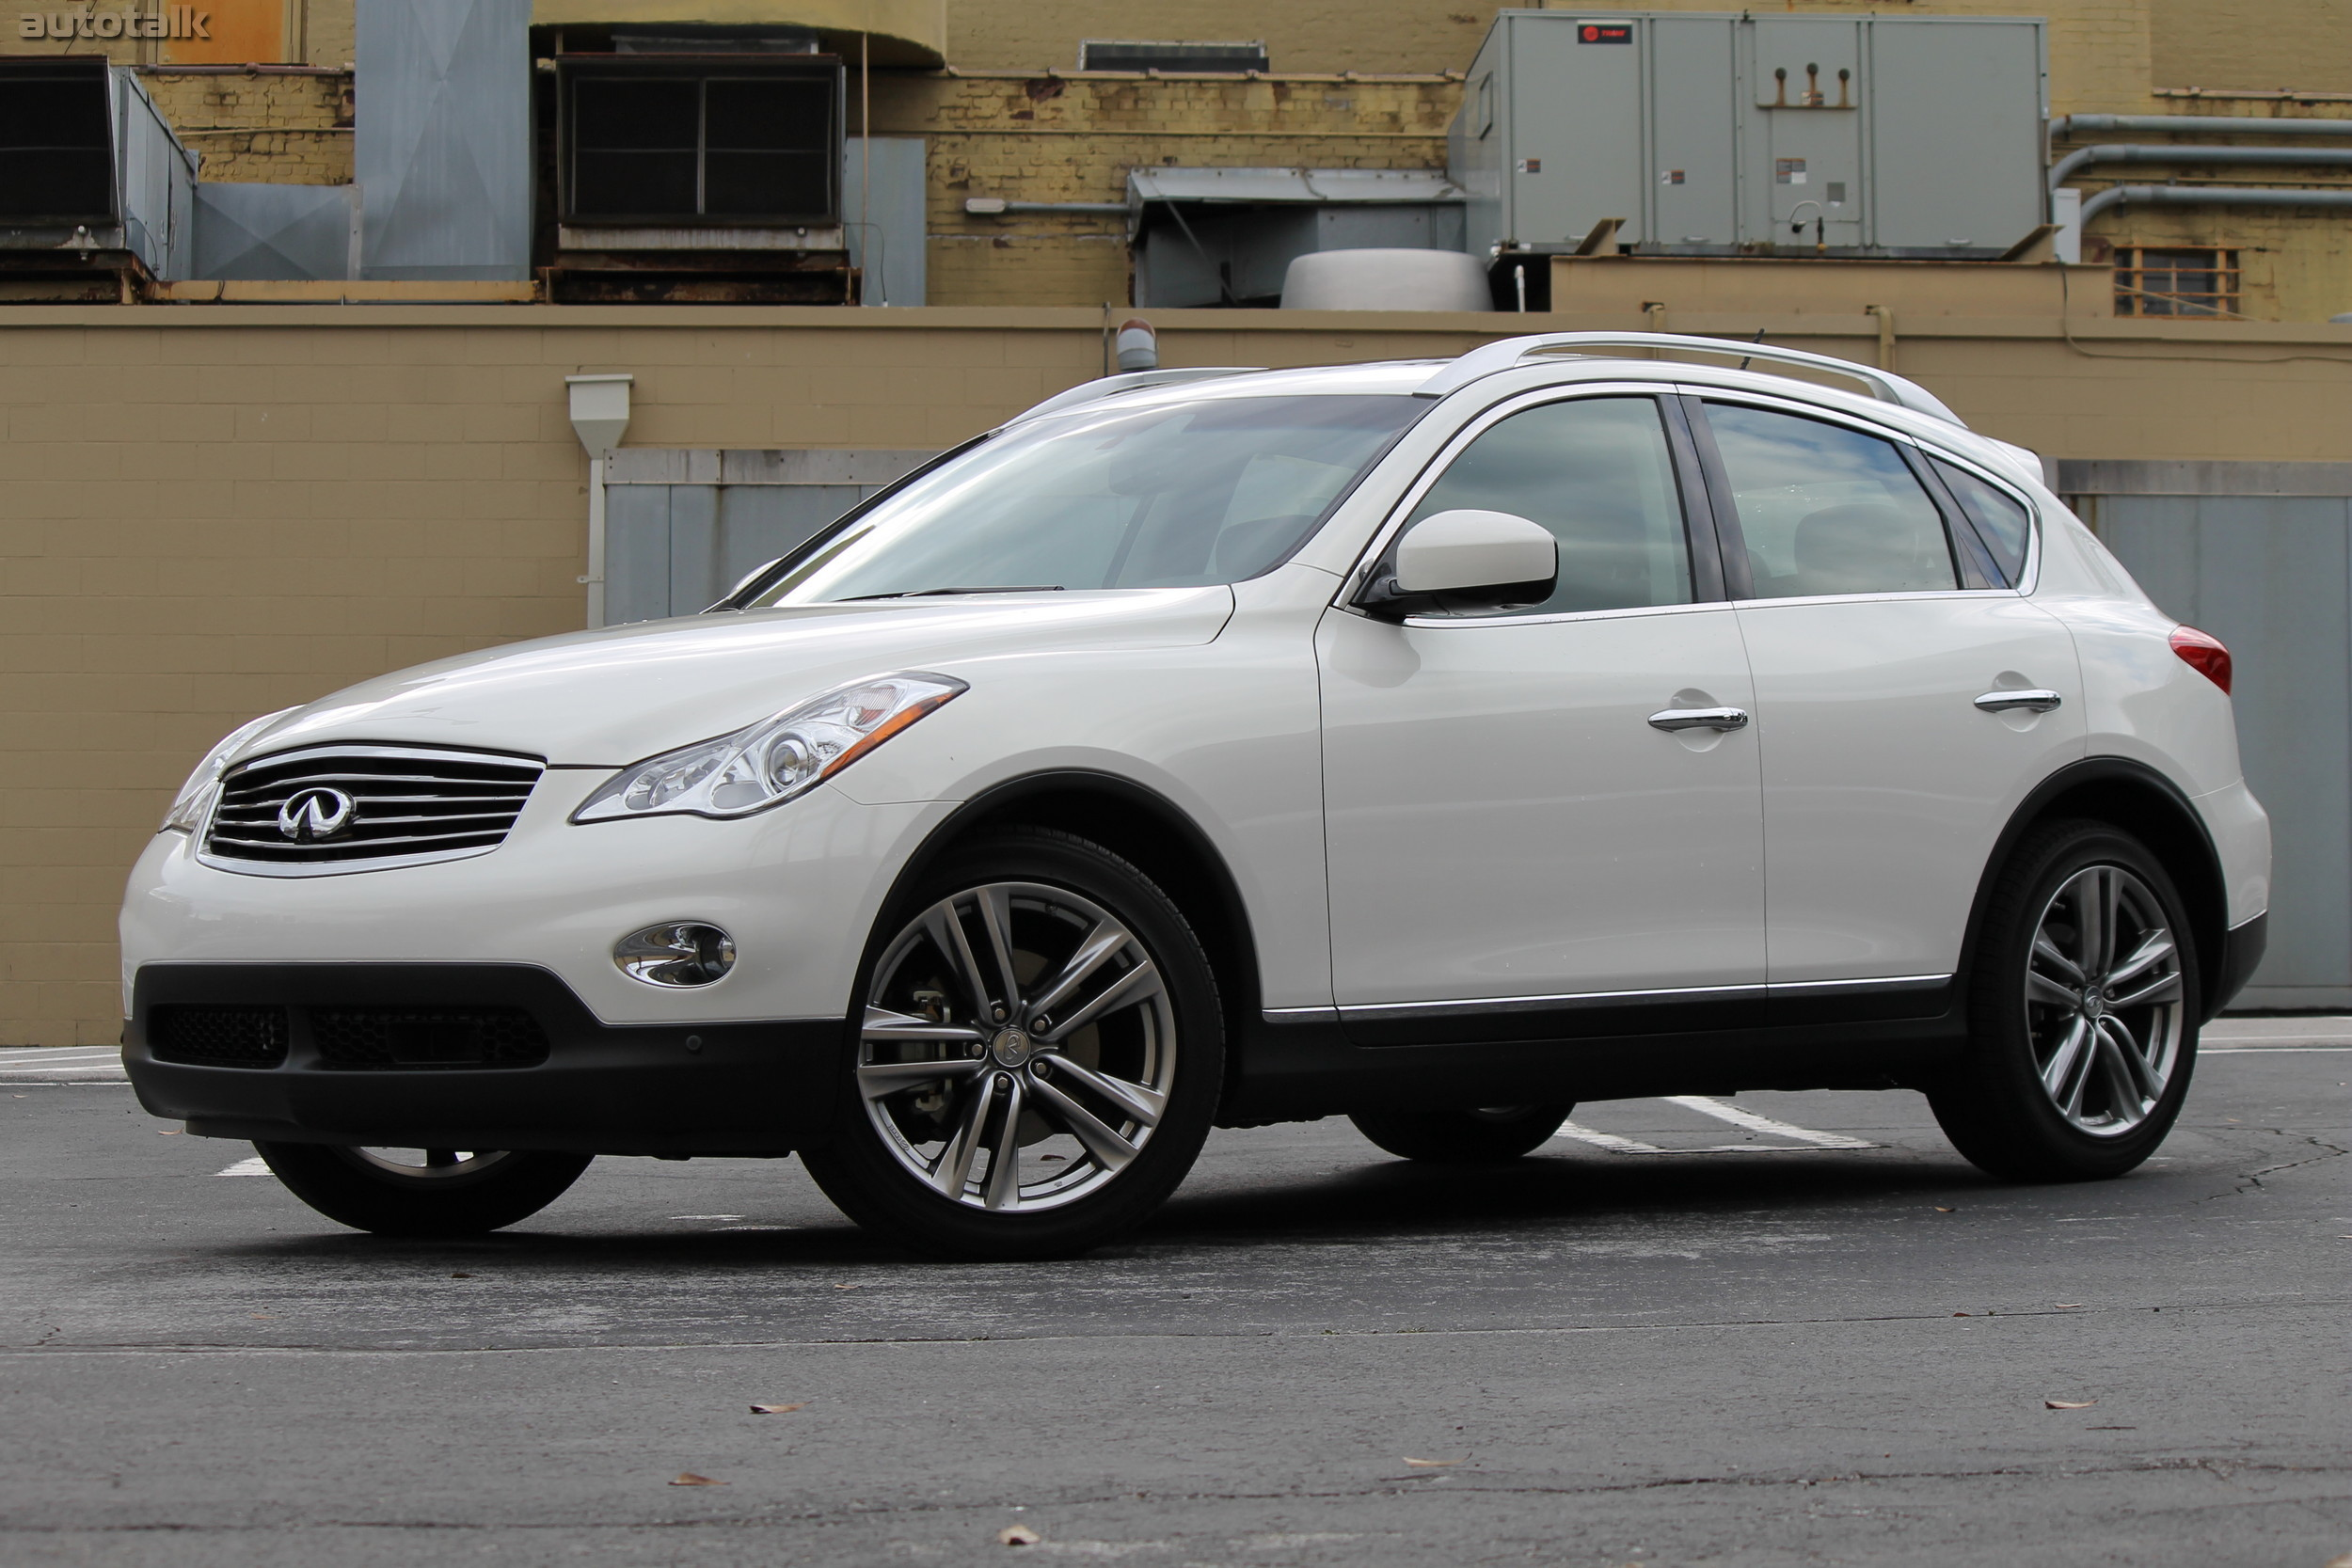 weili related infiniti road trip sale network automotive infinity images for start